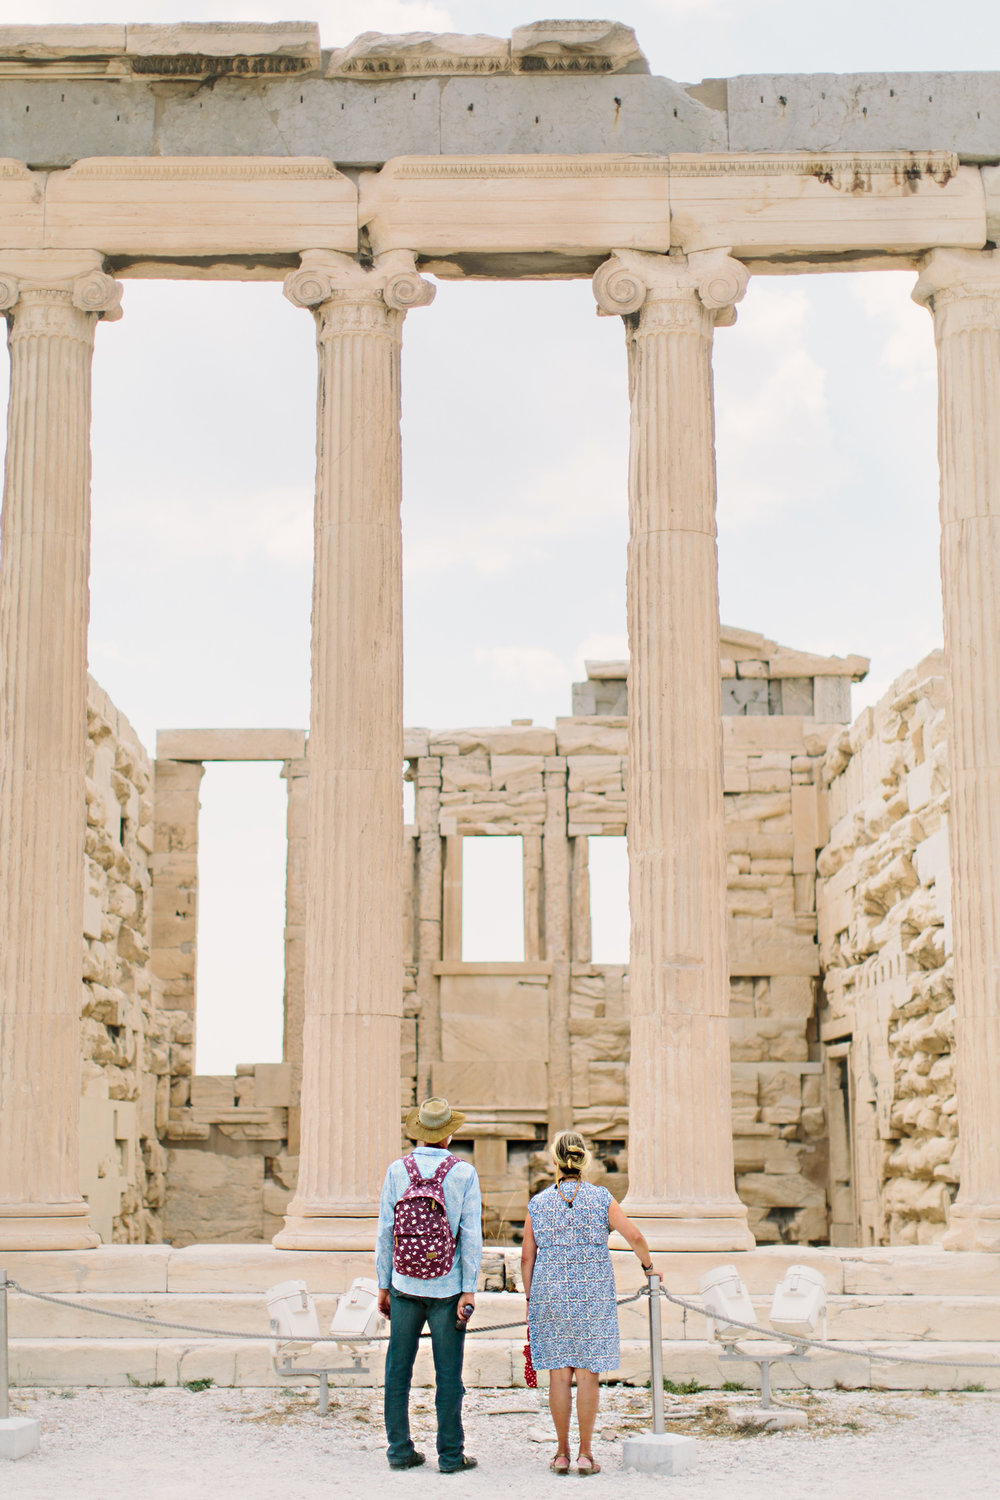 CindyGiovagnoli_Athens_Greece_travel_photographer-014.jpg